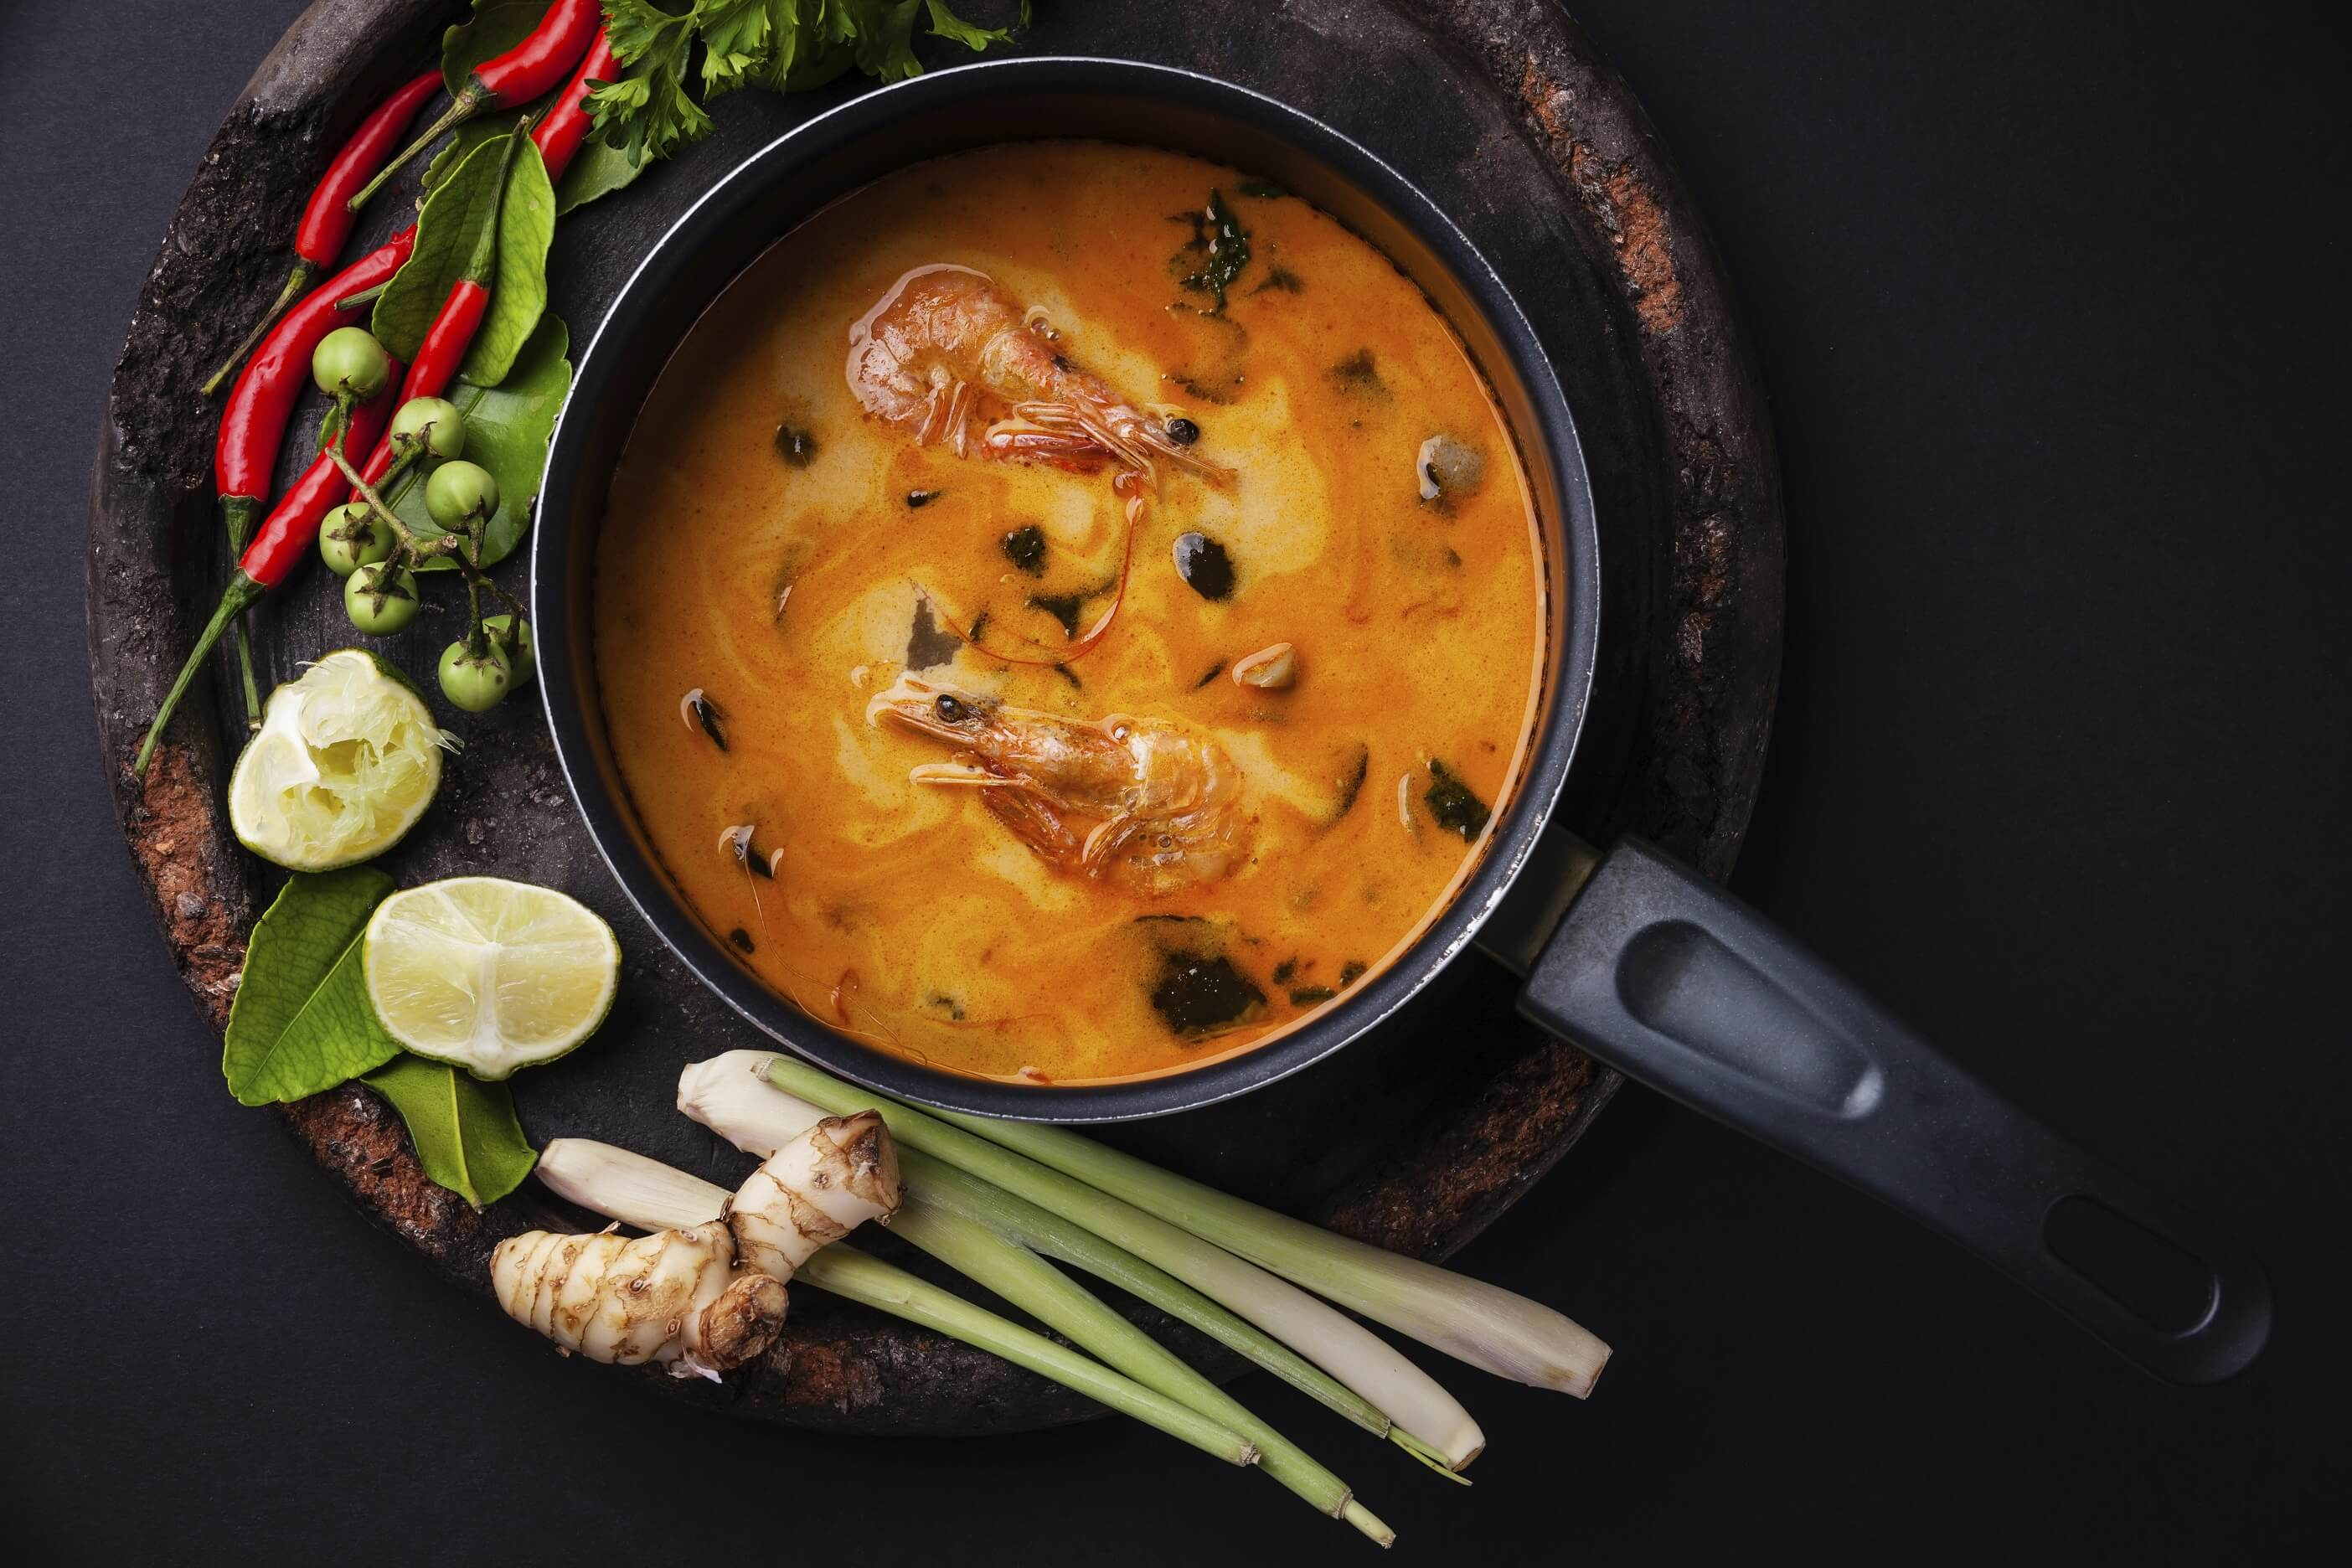 What You Need to Know About Thai Curries